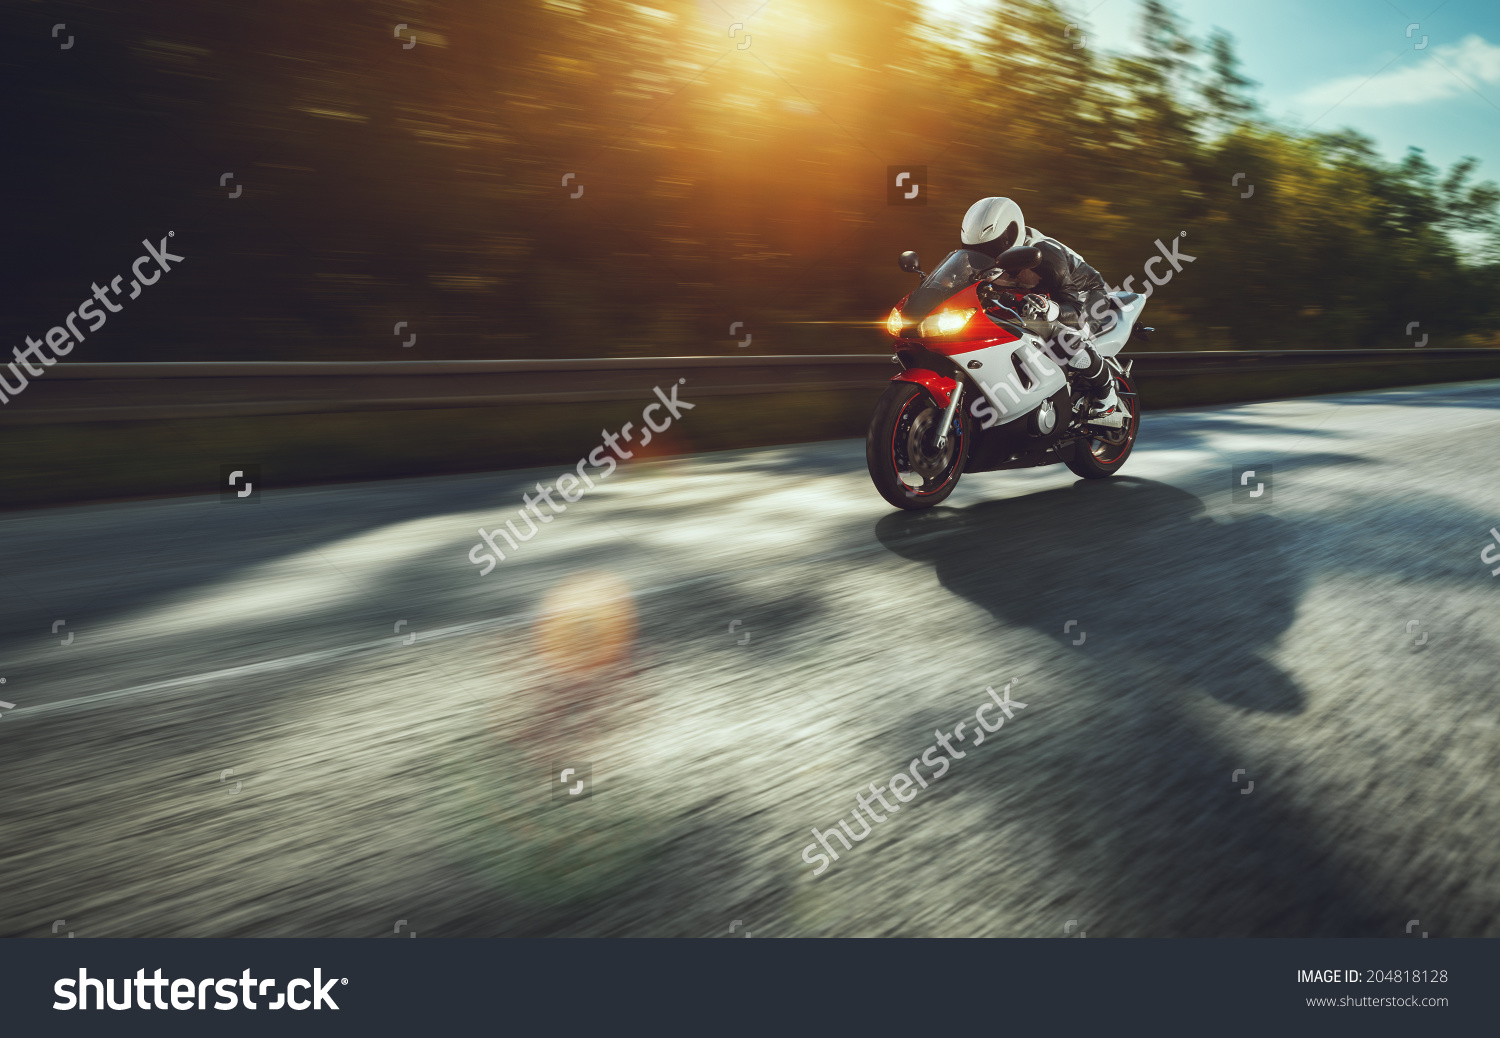 stock-photo-man-riding-motorcycle-in-asphalt-road-204818128